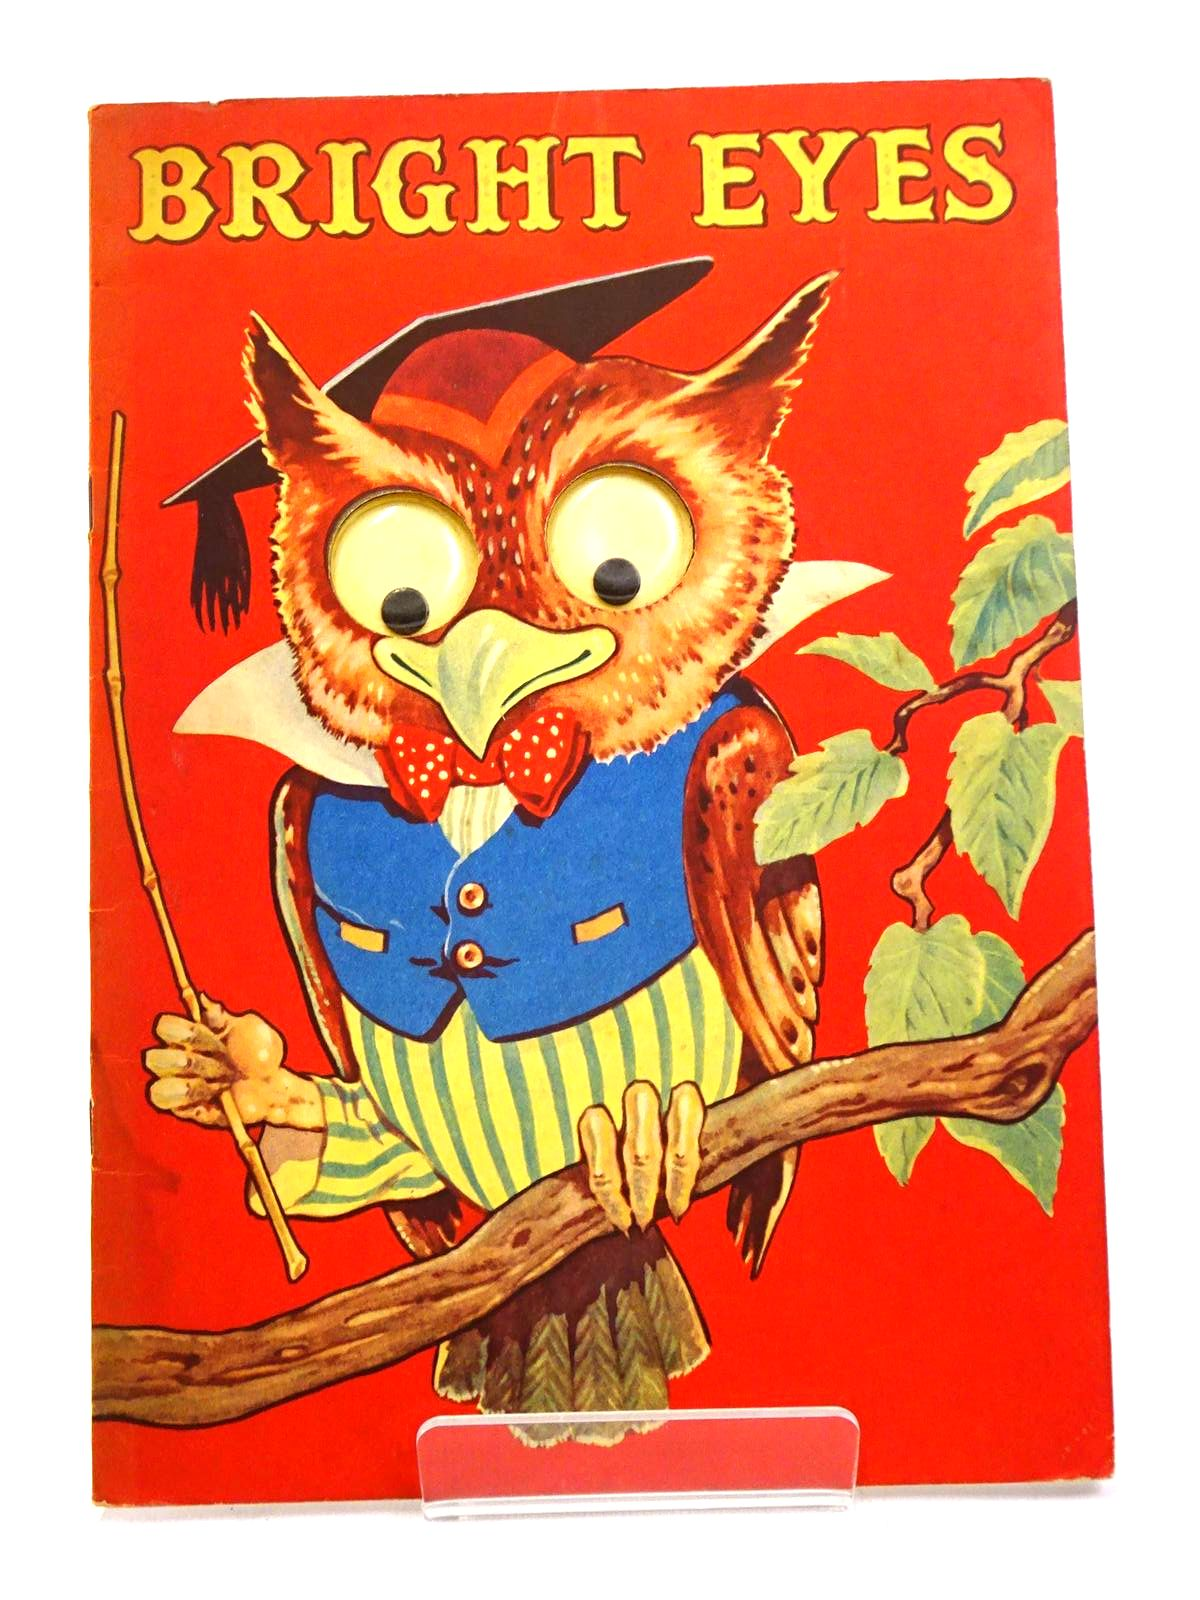 Photo of BRIGHT EYES published by P.M. (Productions) Ltd. (STOCK CODE: 1317939)  for sale by Stella & Rose's Books